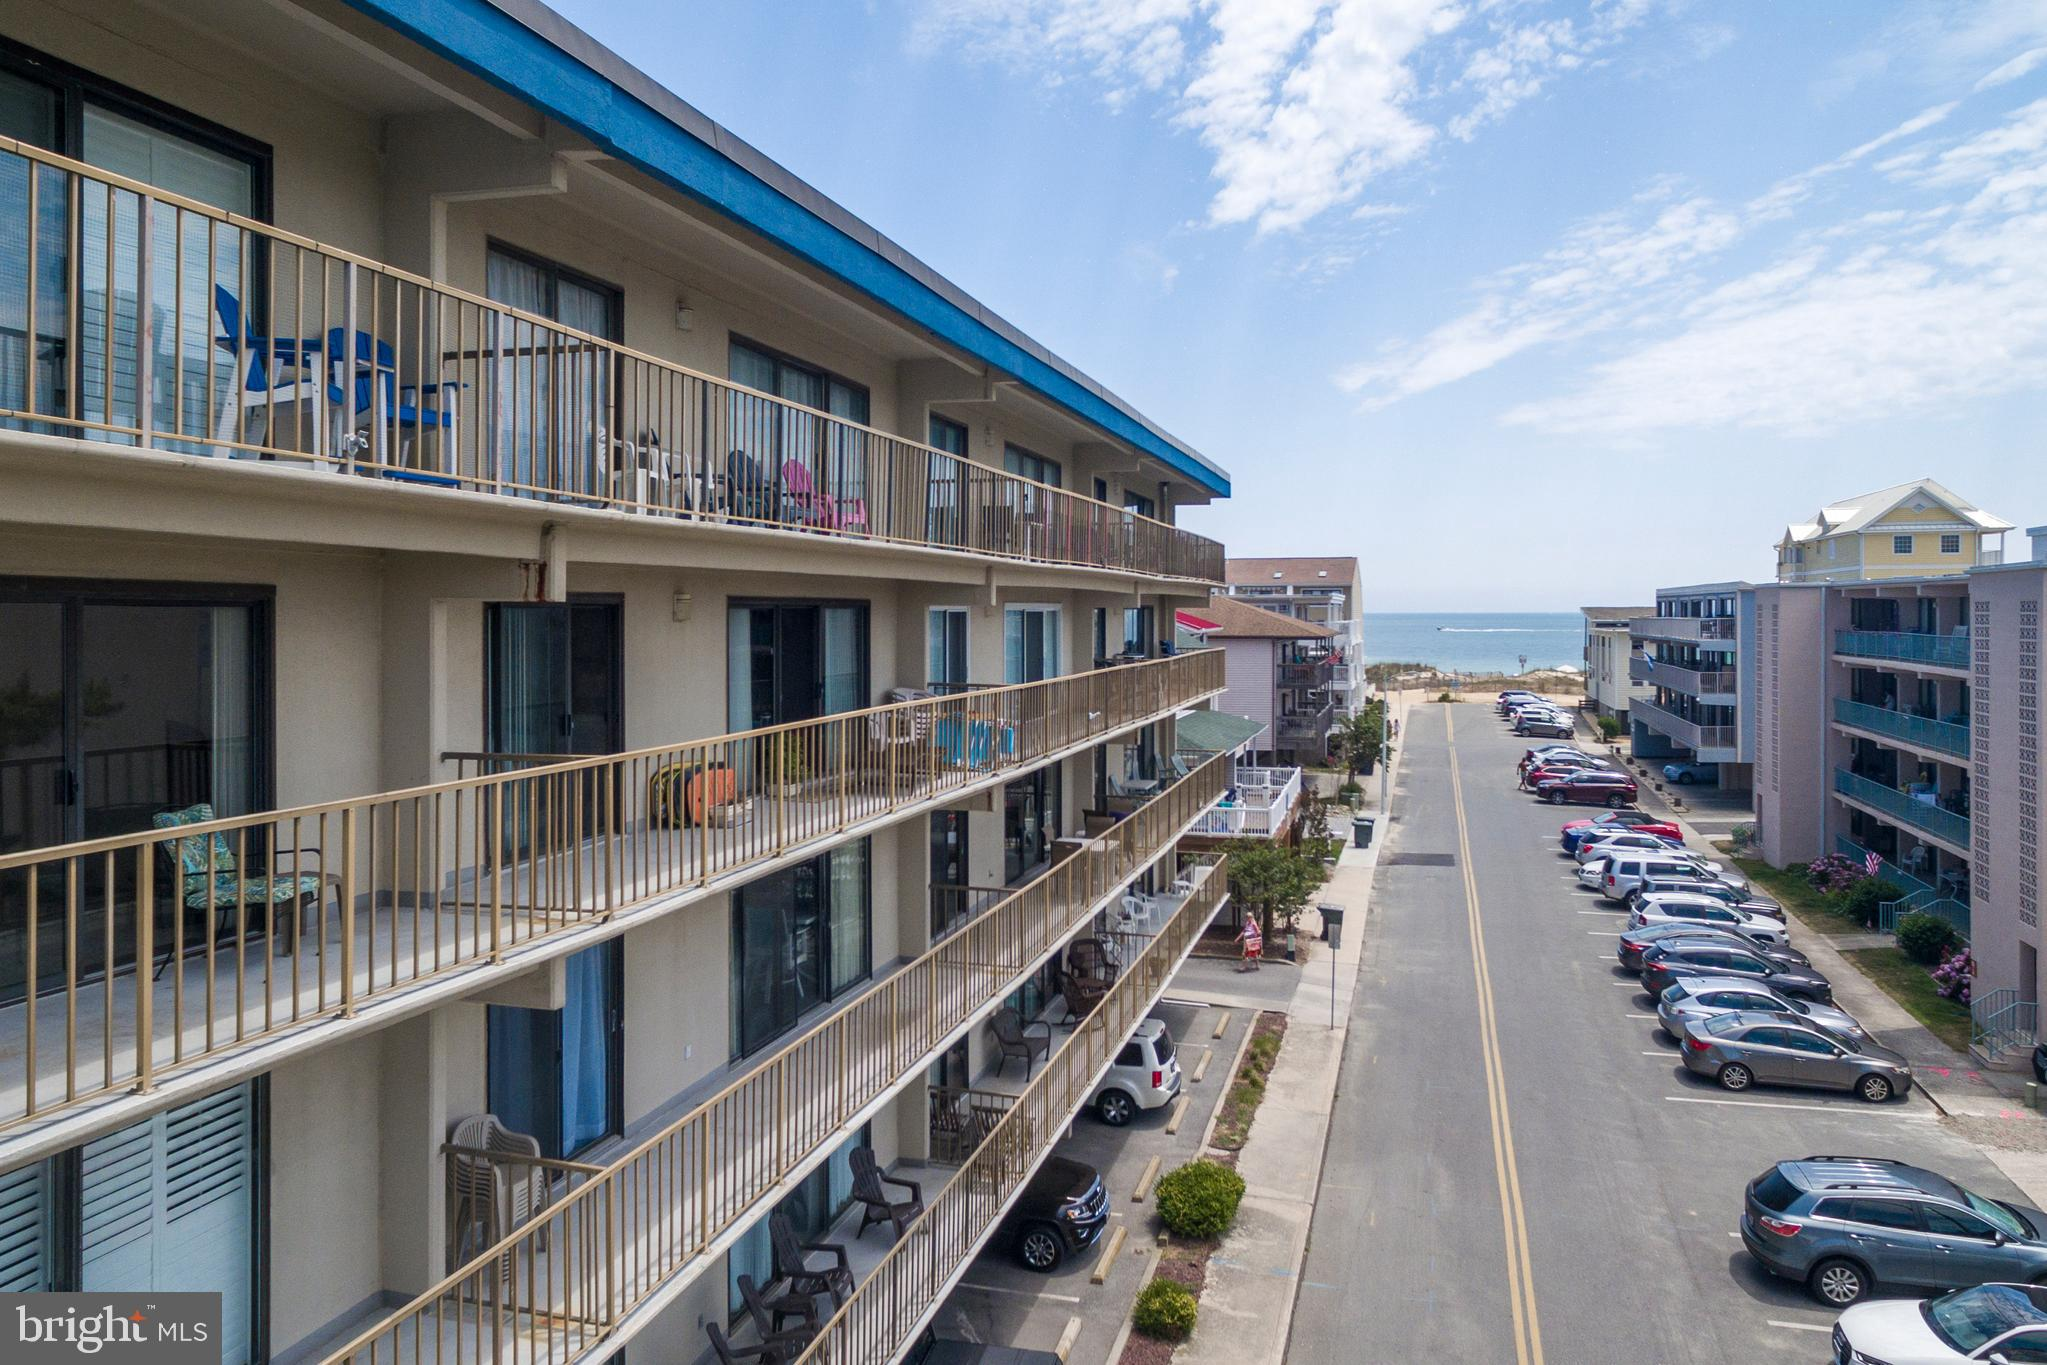 Mid-town Ocean Block - incredible location. A 3-bed/2-bath condo priced to sell and it has an indoor